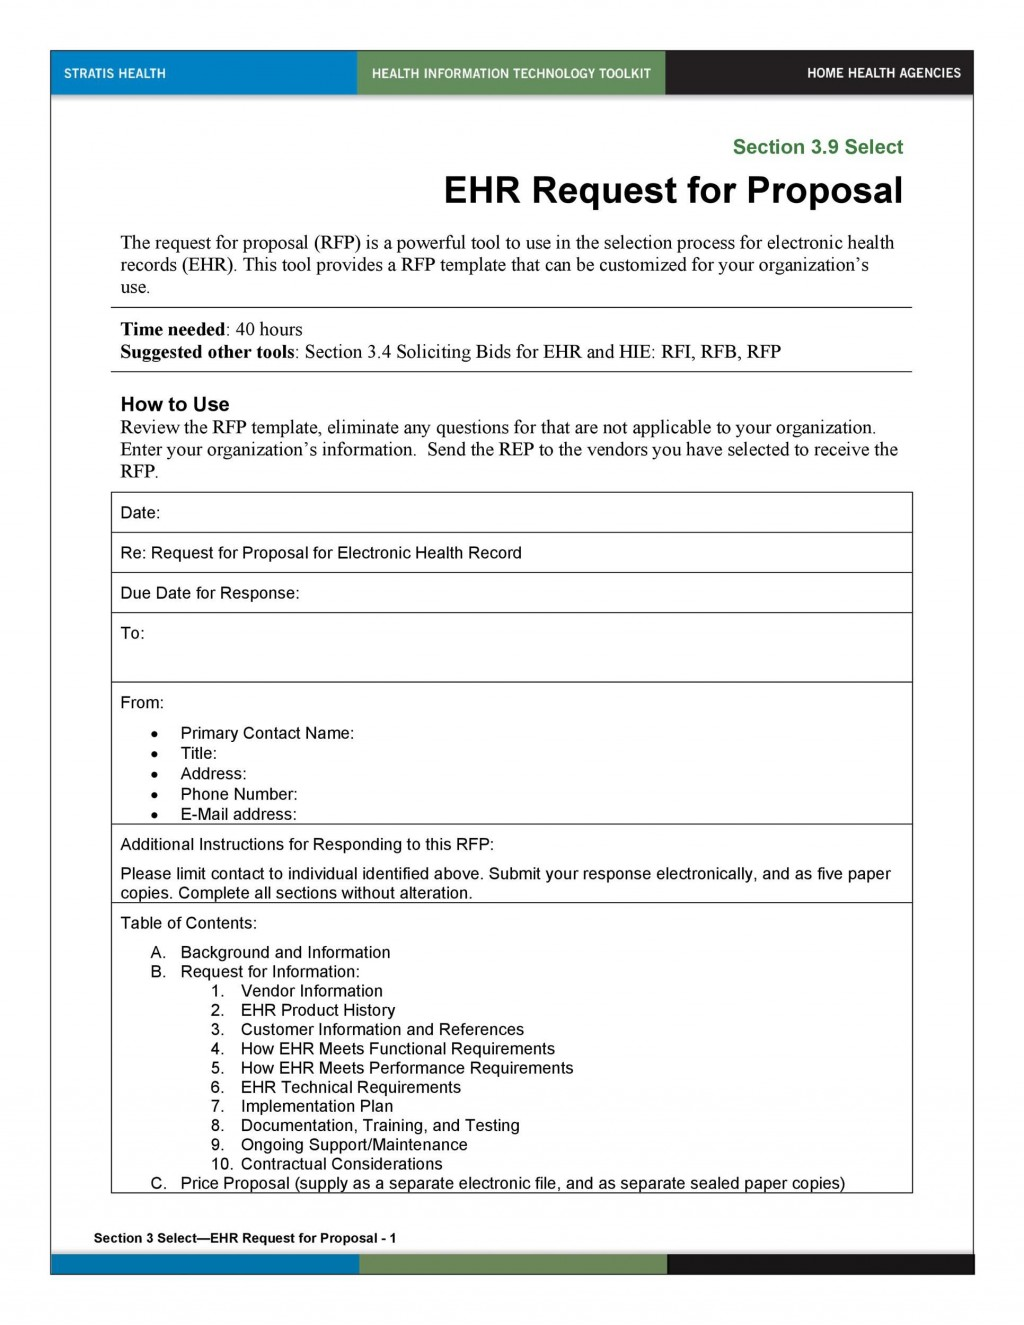 002 Impressive Request For Proposal Response Word Template Concept Large